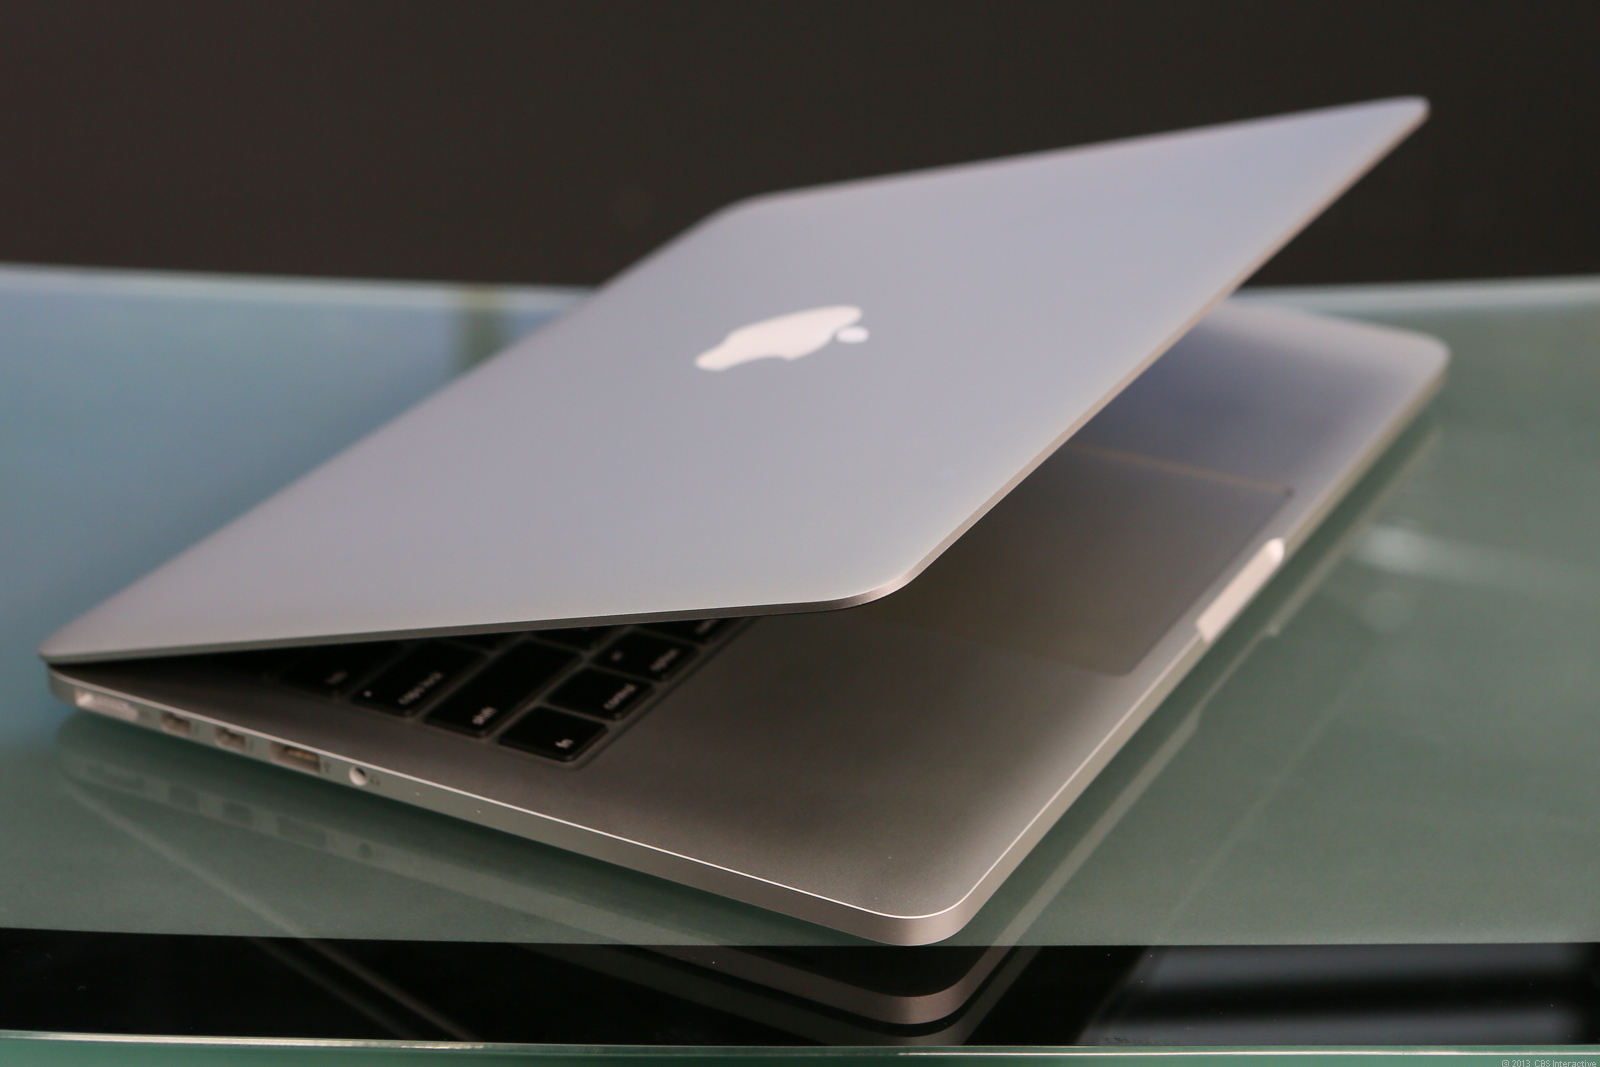 apple macbook pro with retina display 13 inch 2013 review cnet